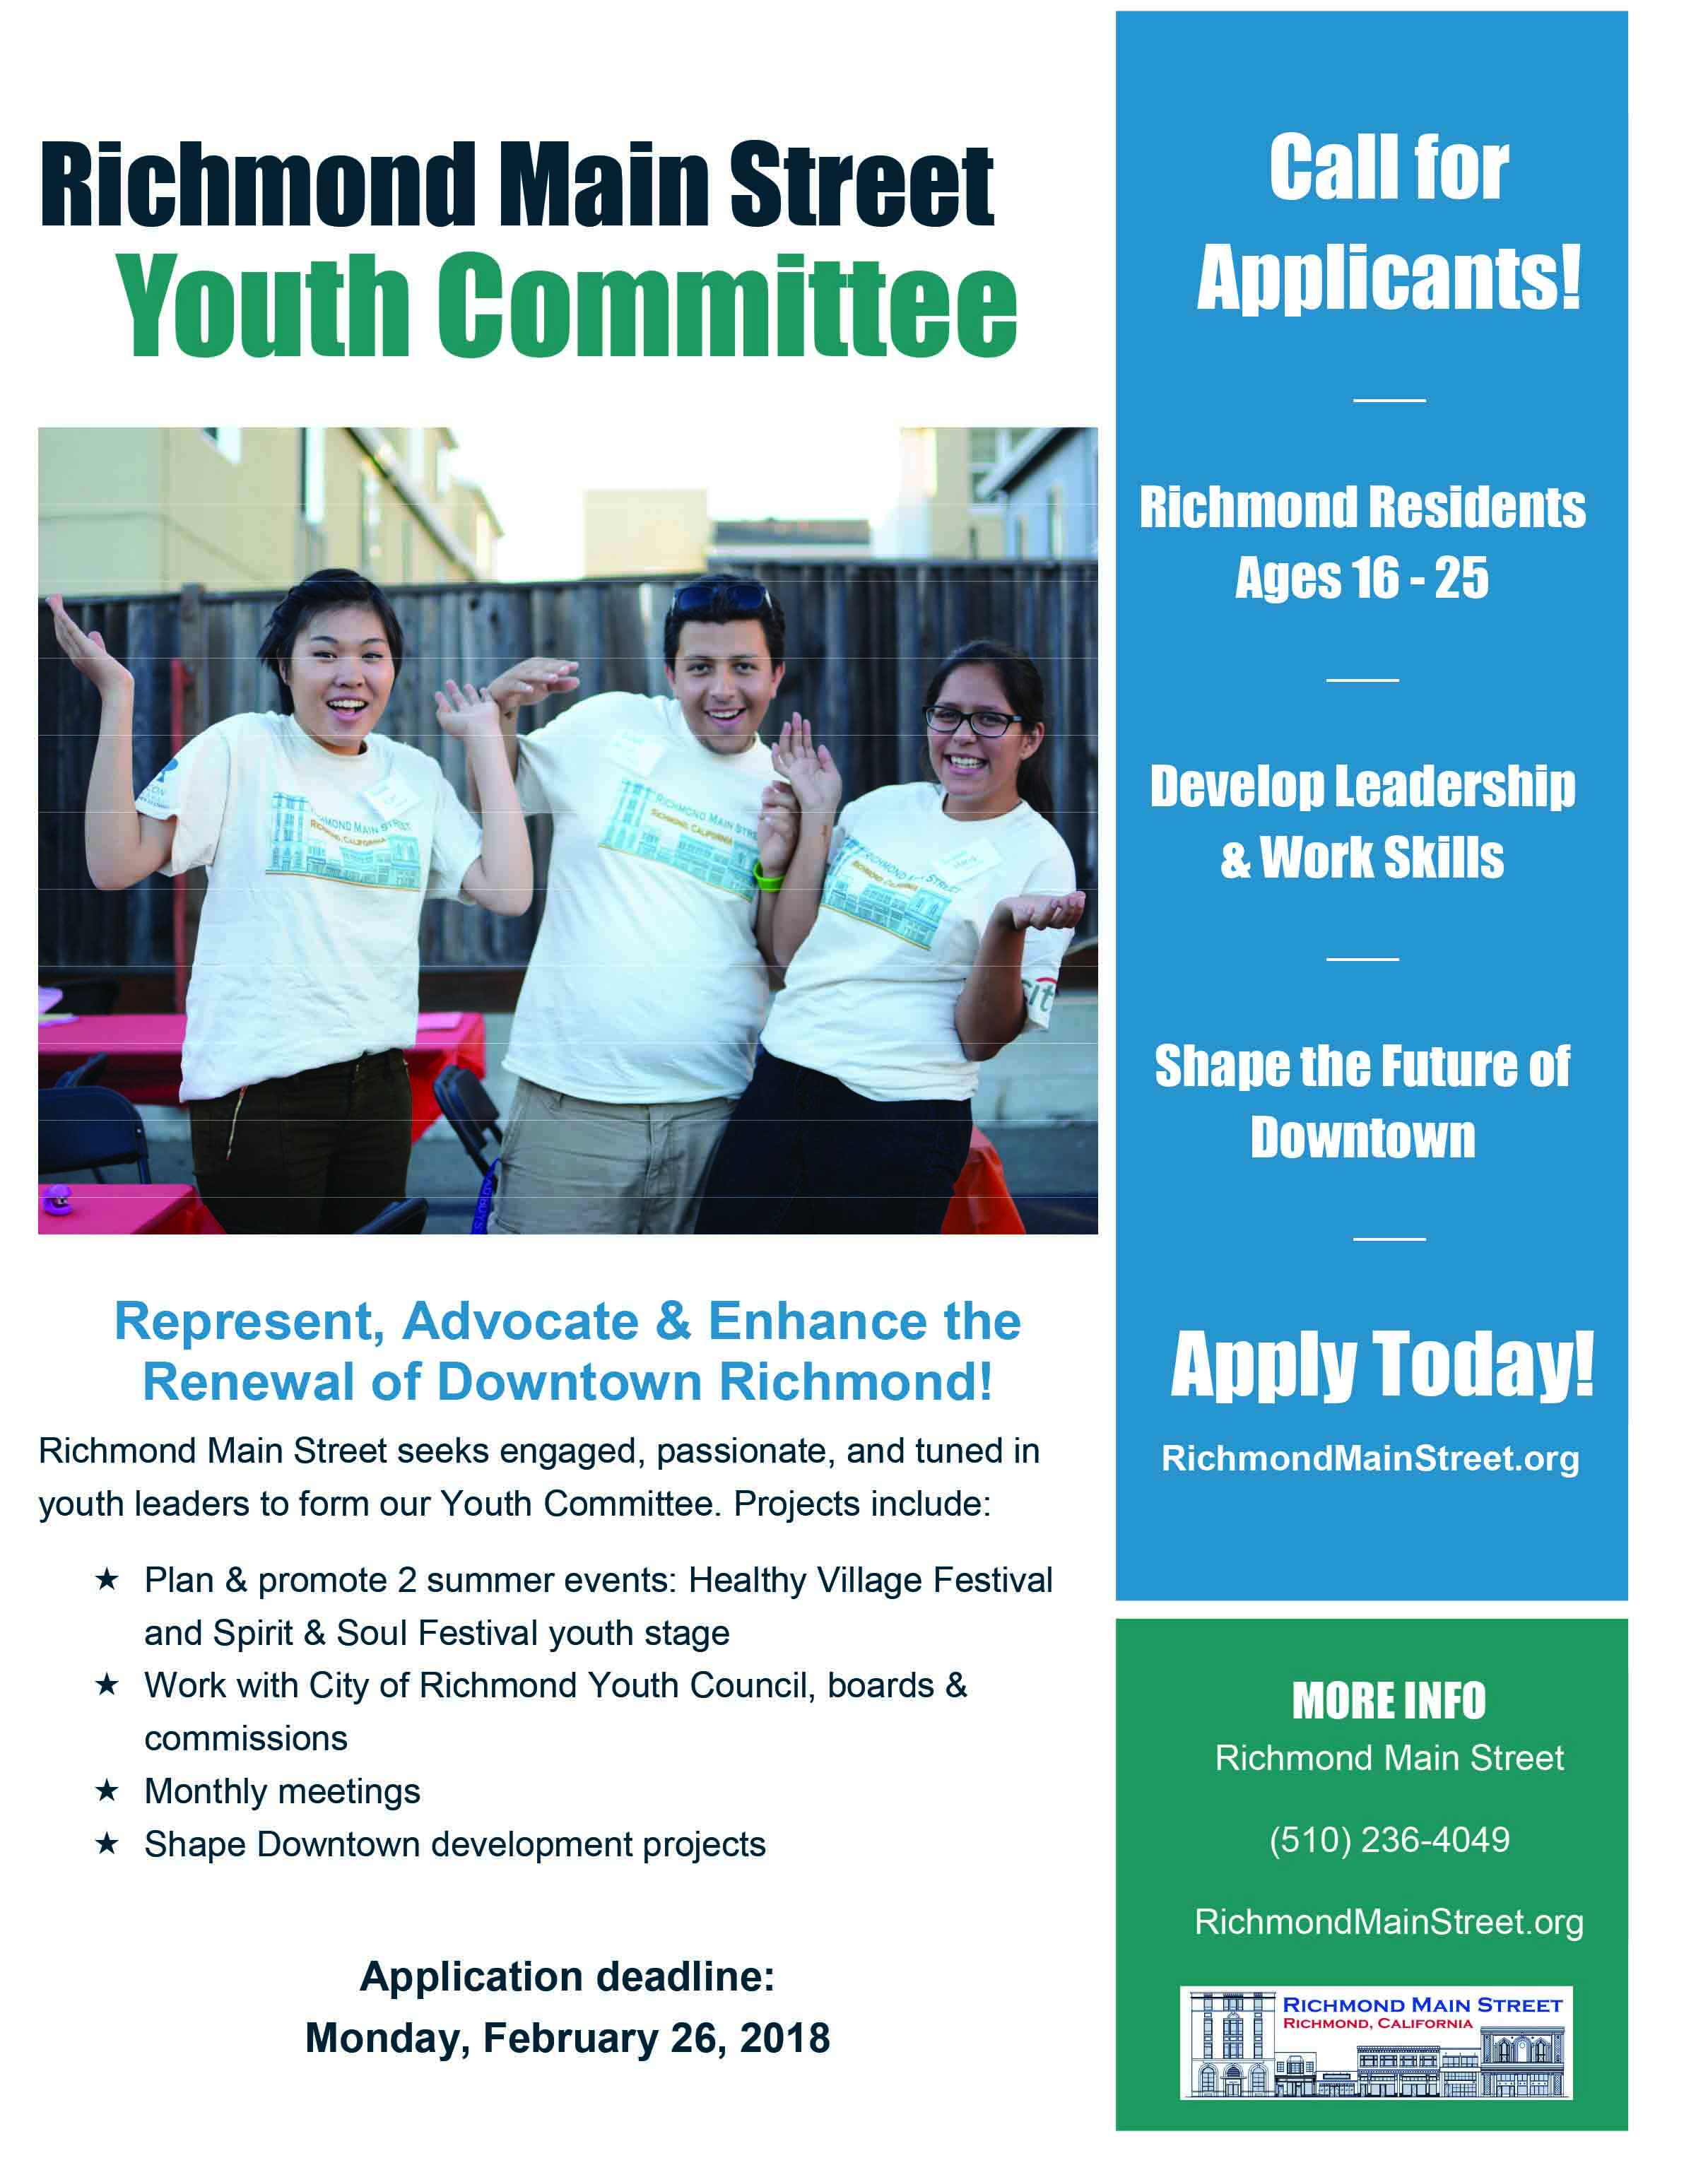 Call for Applicants! Richmond Main Street Youth Committee